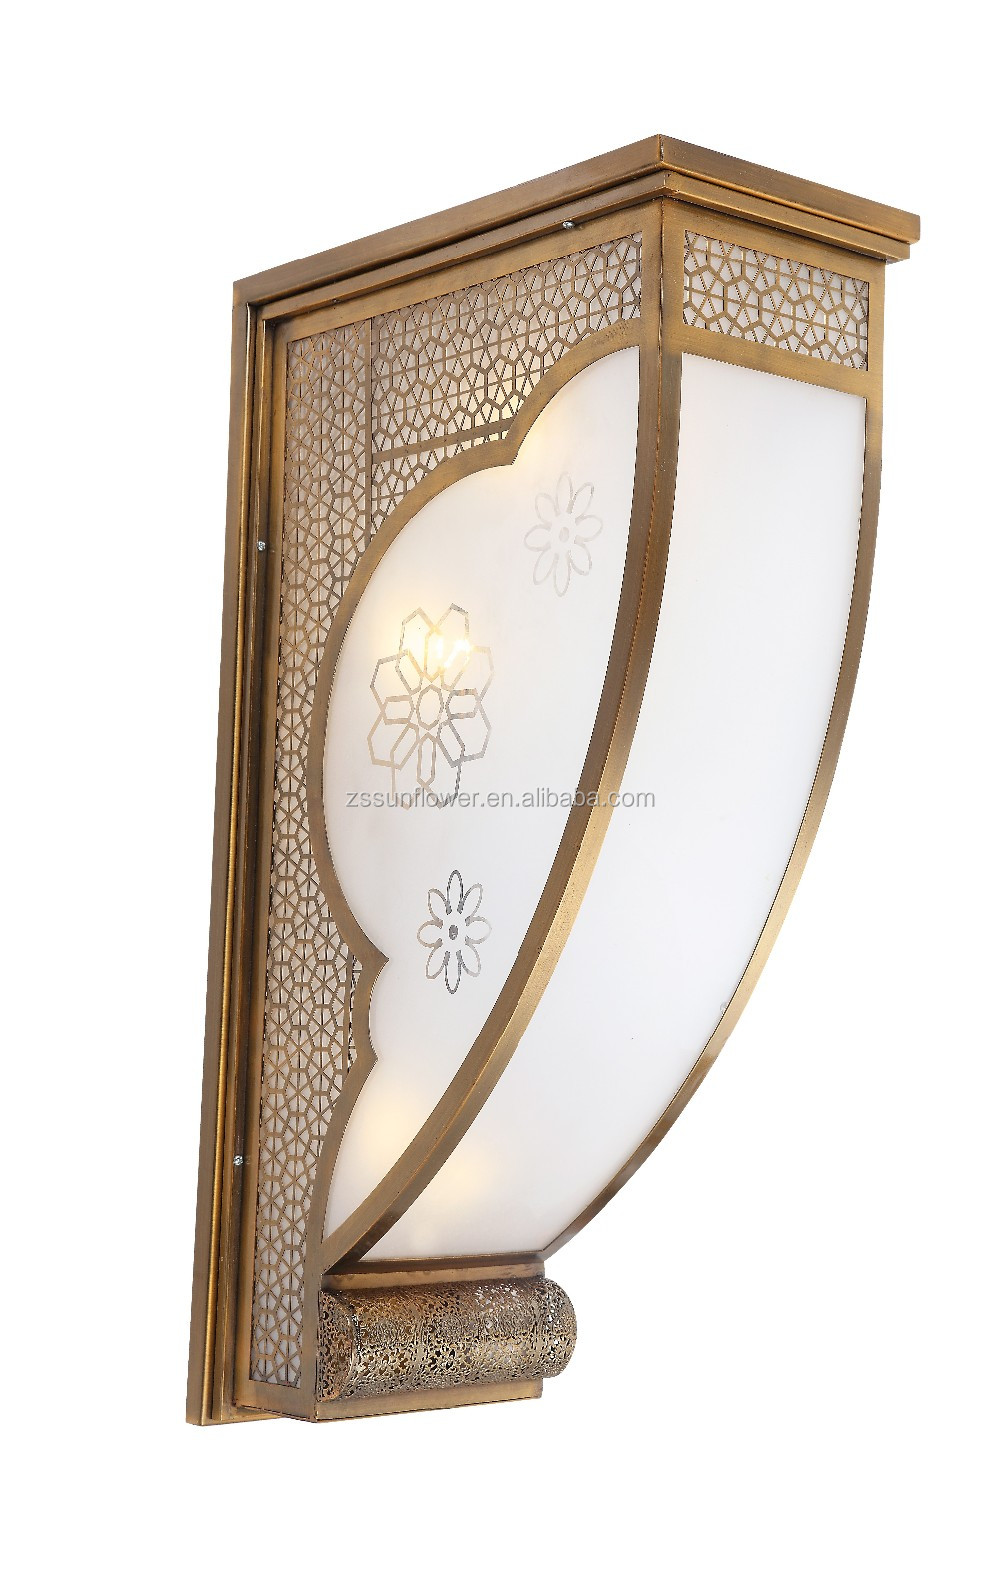 New products antique arabian wall lighting for hotel project